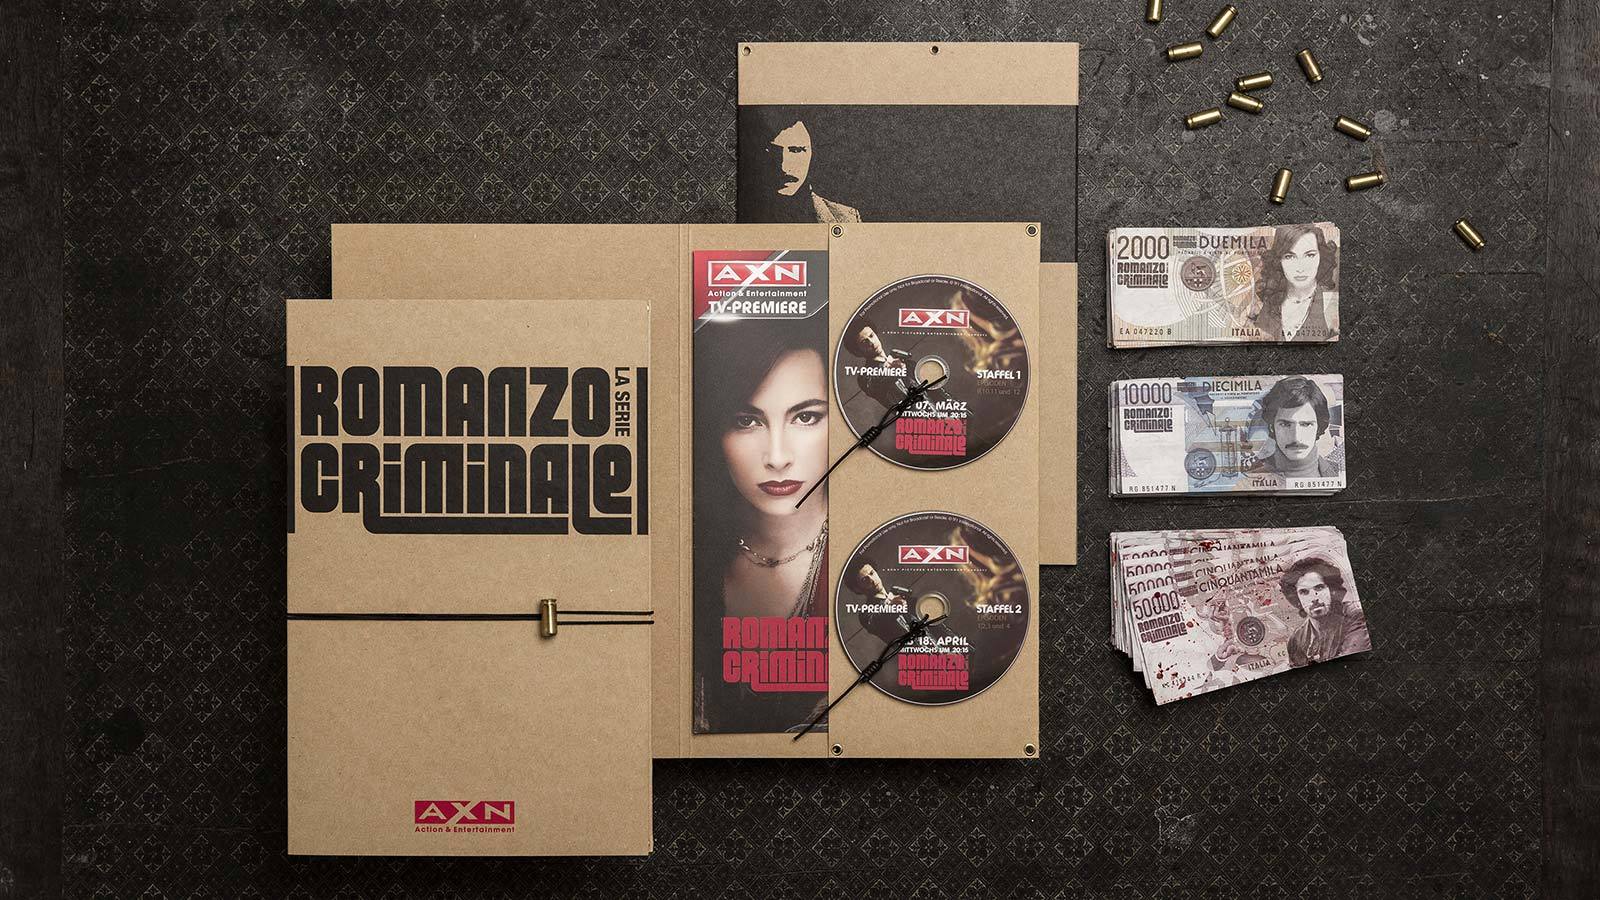 A X N, Romanzo Criminale press kits and counterfeit money